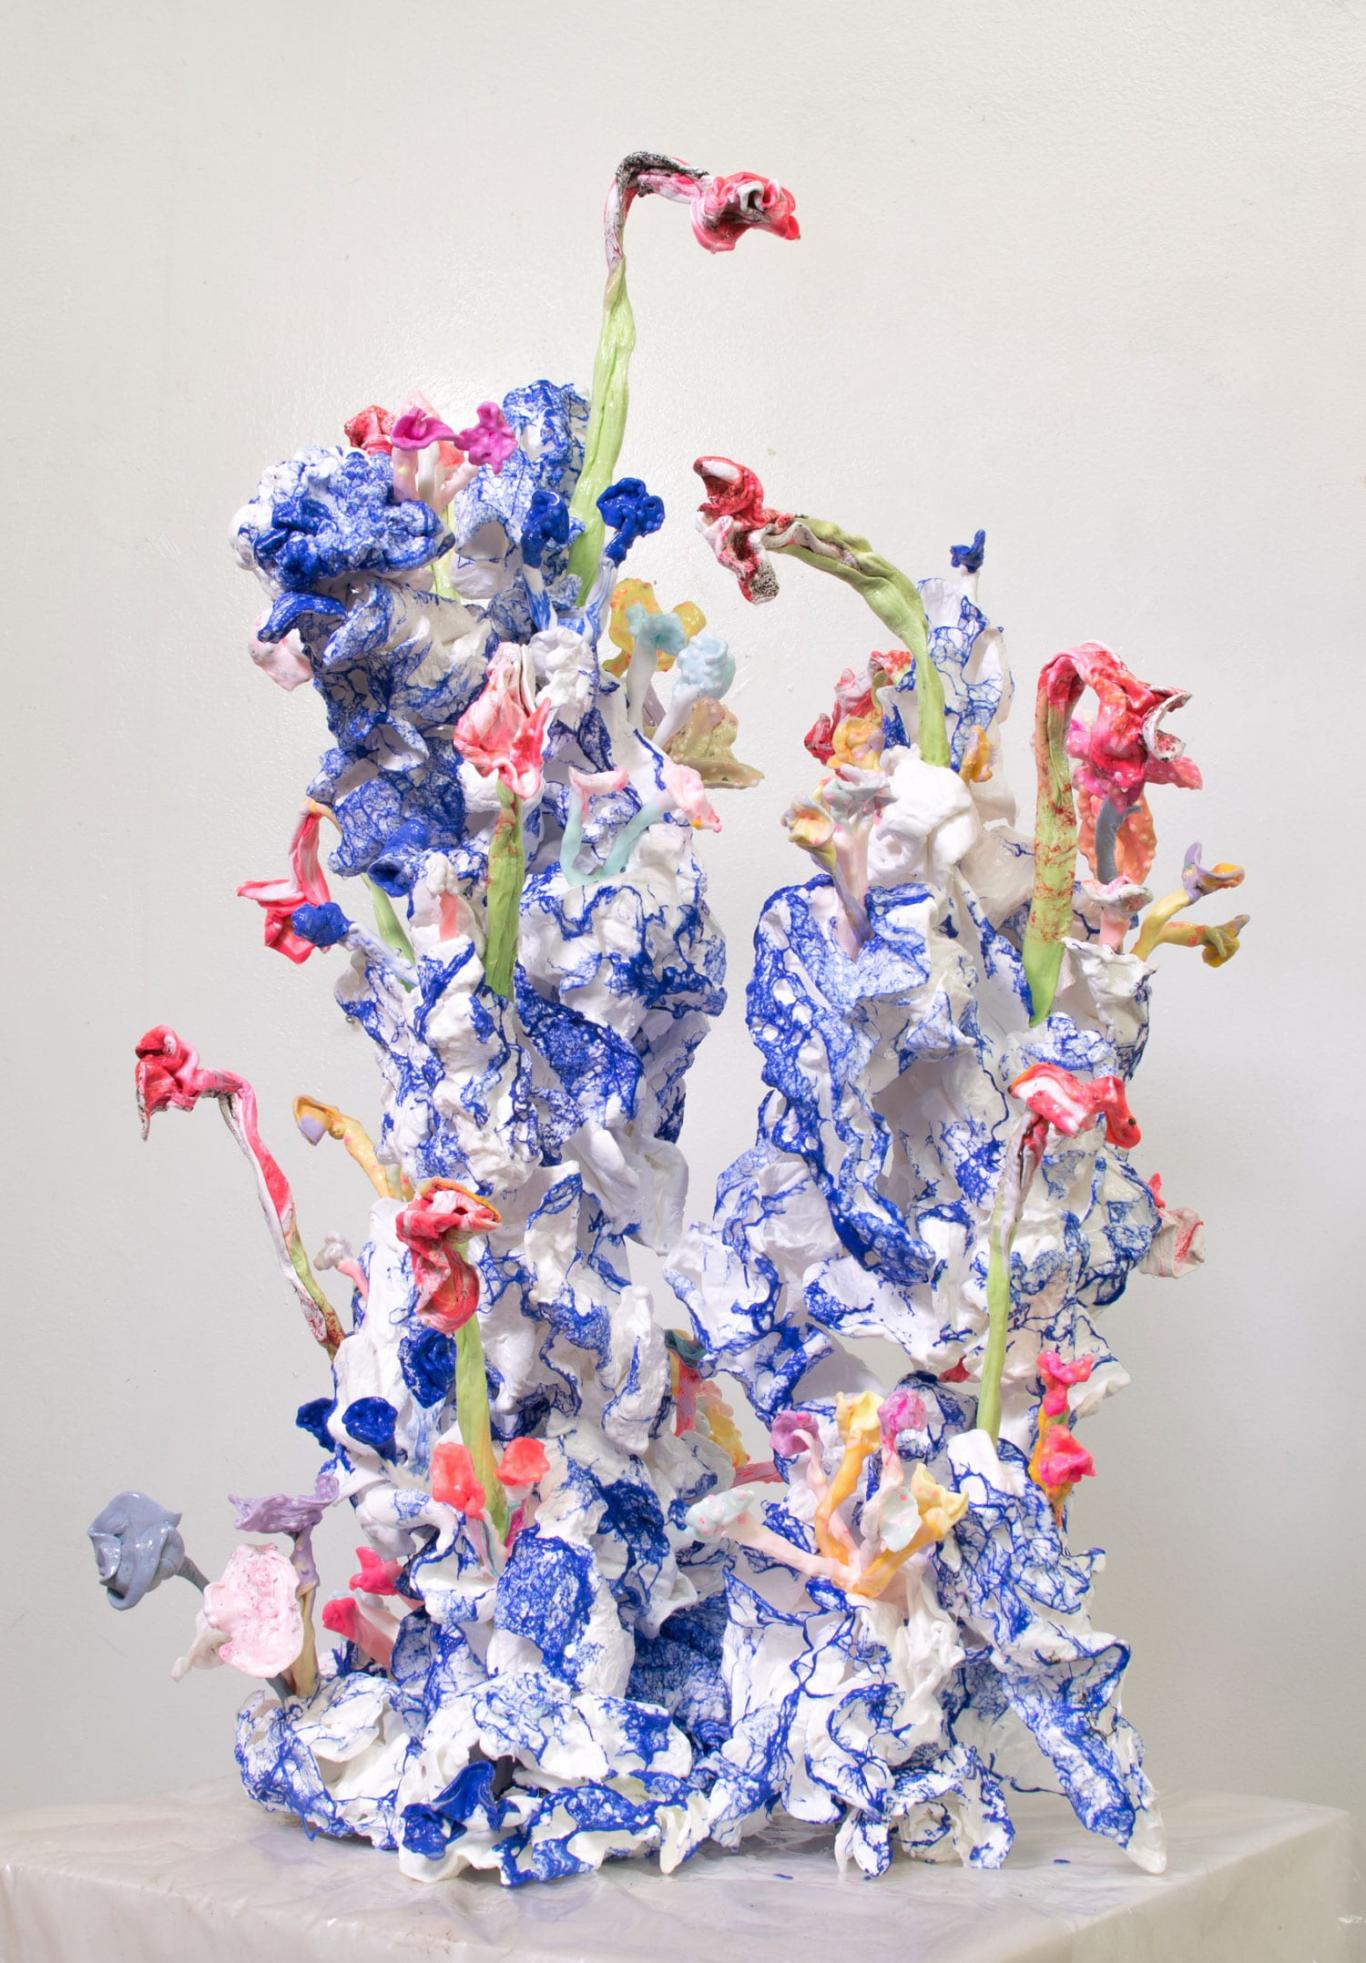 Oil-Plastic-Sculptures-by-Stefan-Gross-Yellowtrace-04